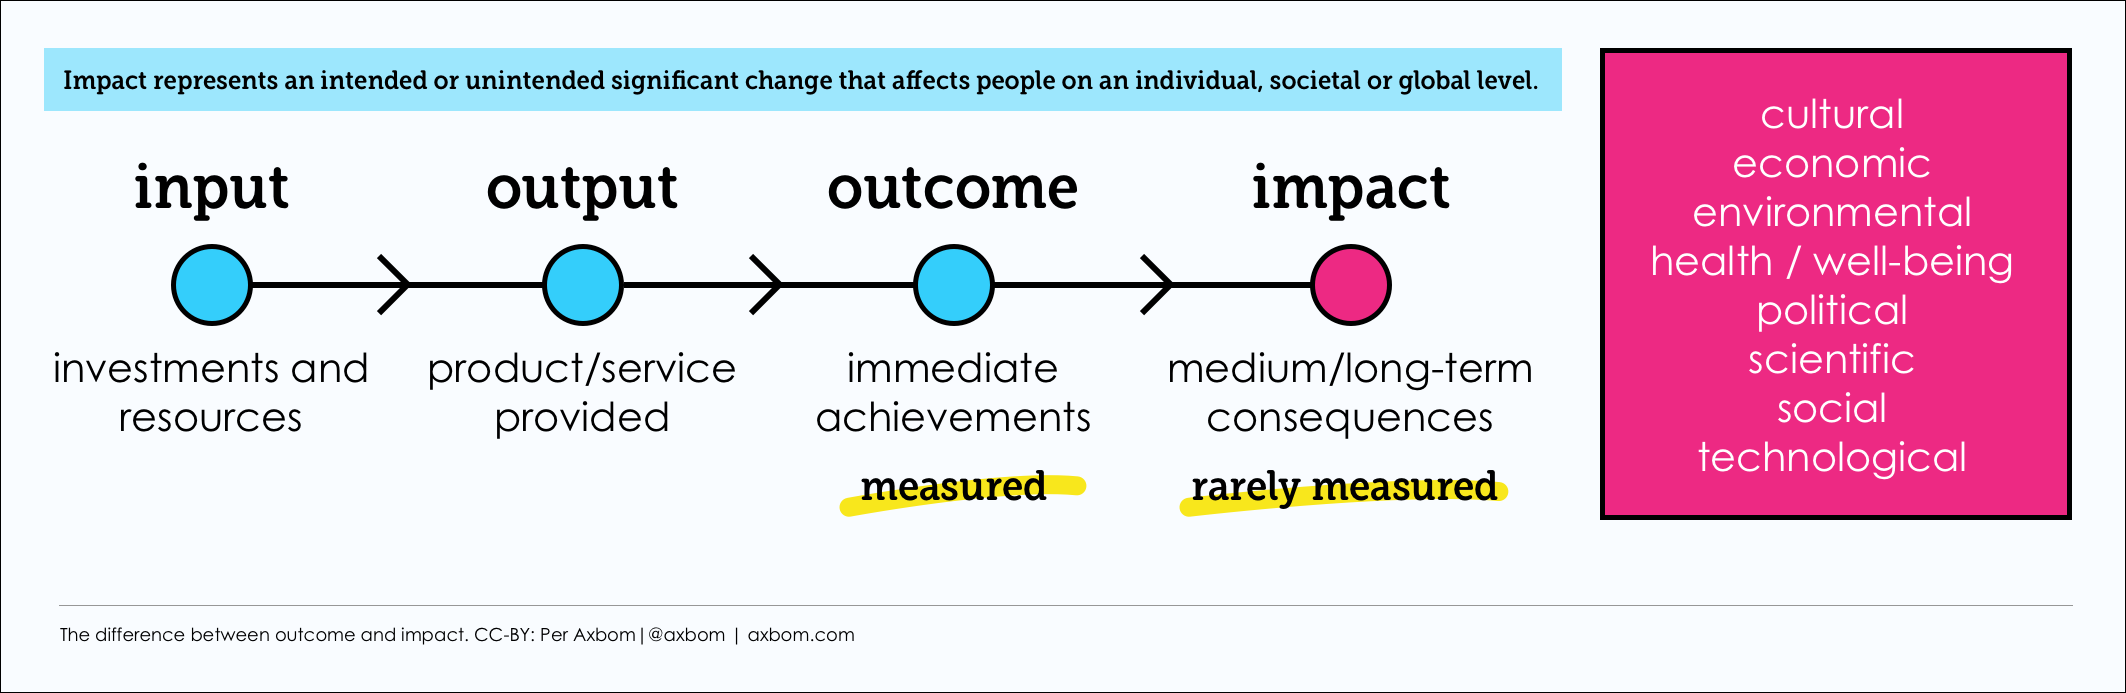 Diagram showing arrows between the steps of input, output, outcome and impact